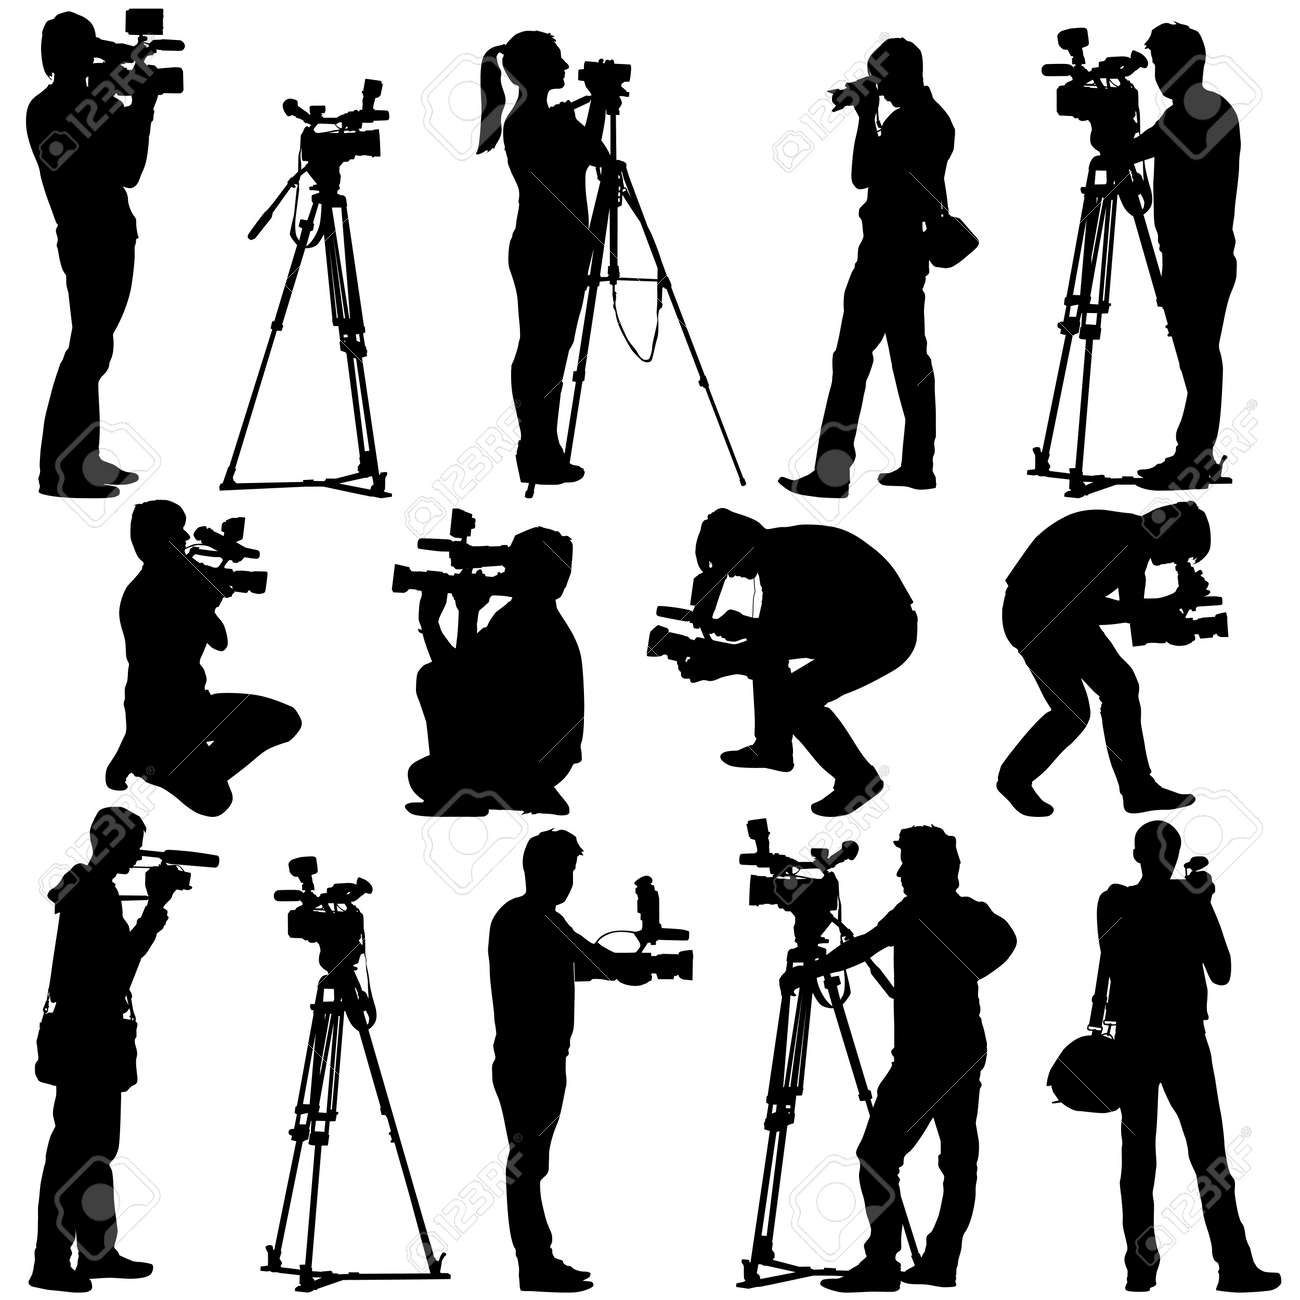 Cameraman with video camera. Silhouettes on white background. Vector illustration. - 39161952